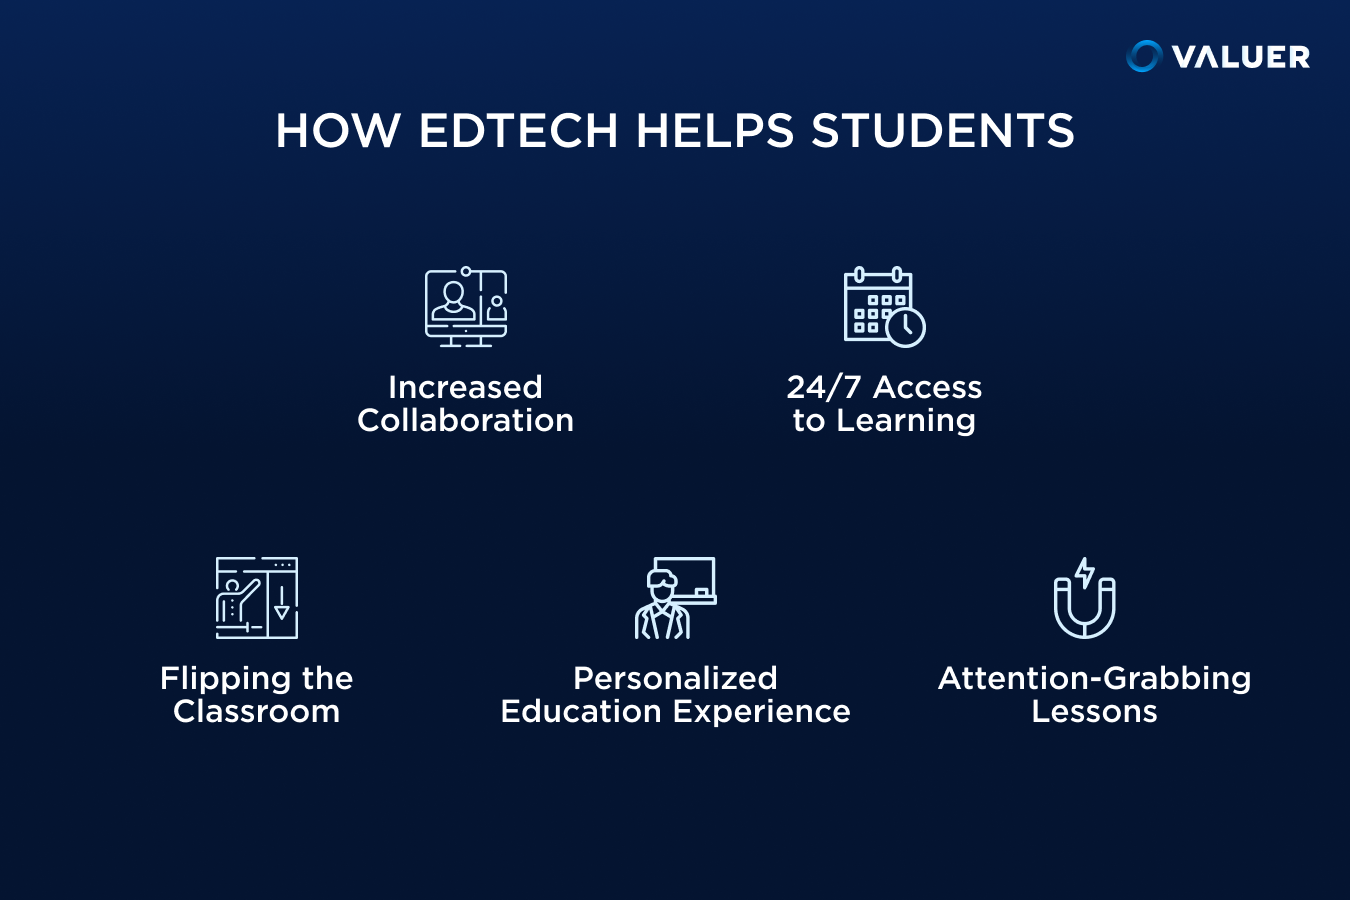 How Edtech Helps Students